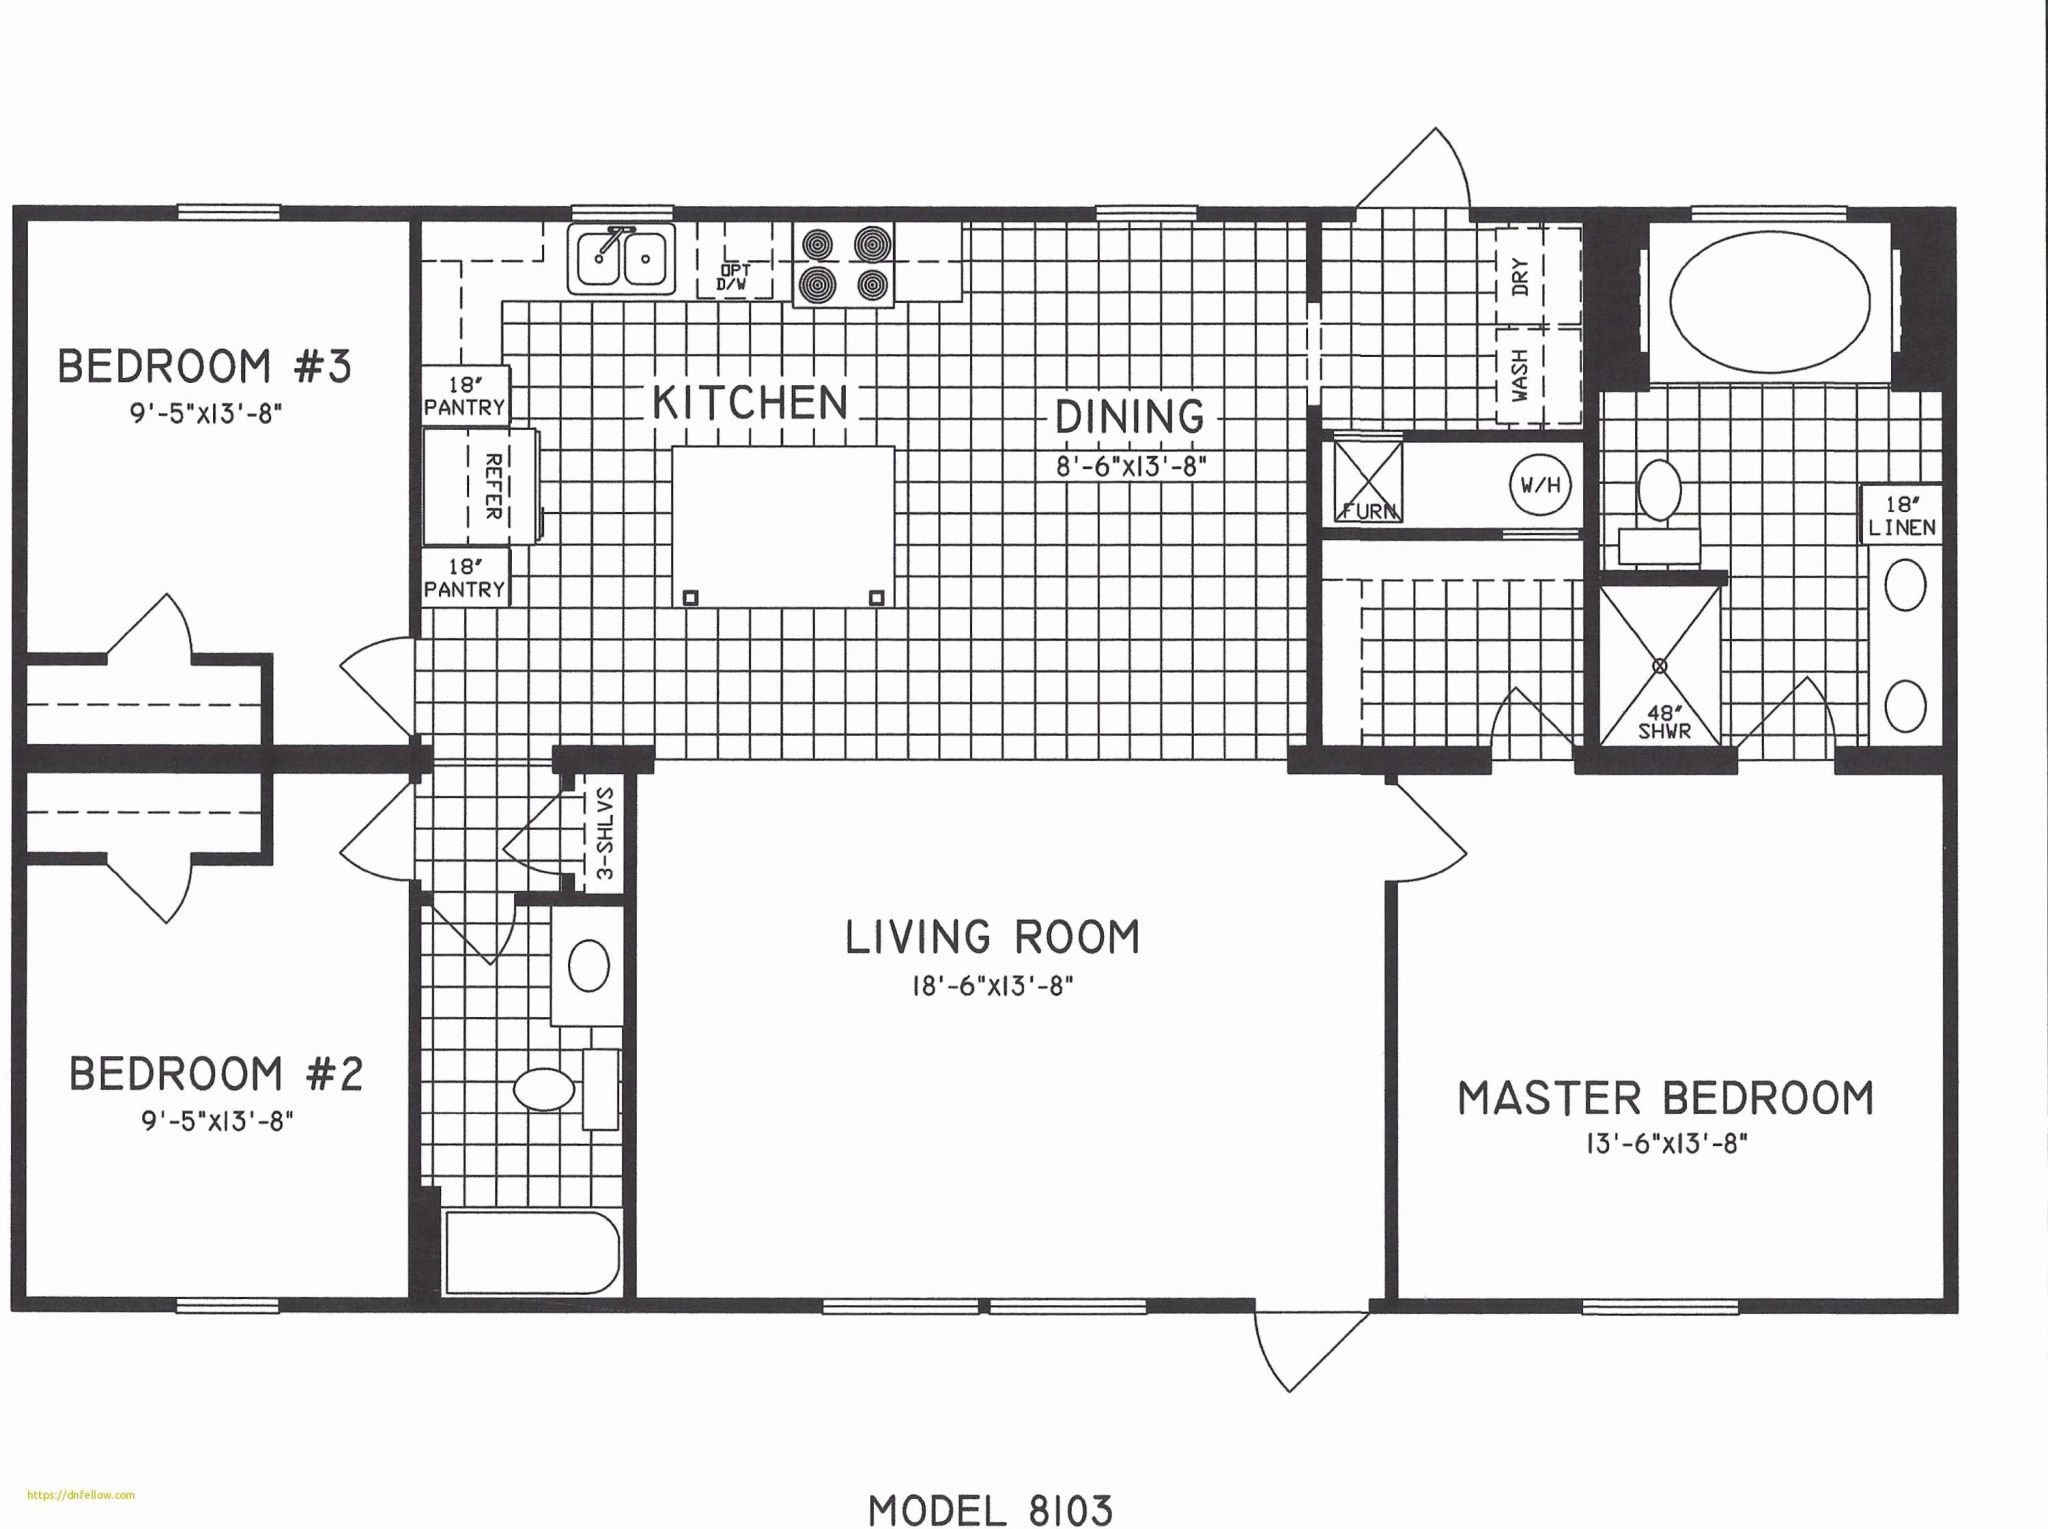 Www Home Design Plan Unique Floor Plans For Building A House Luxury Designing Floor Plans The Open Floor Plan House Also Known As Open S In 2020 Minecraft House Plans